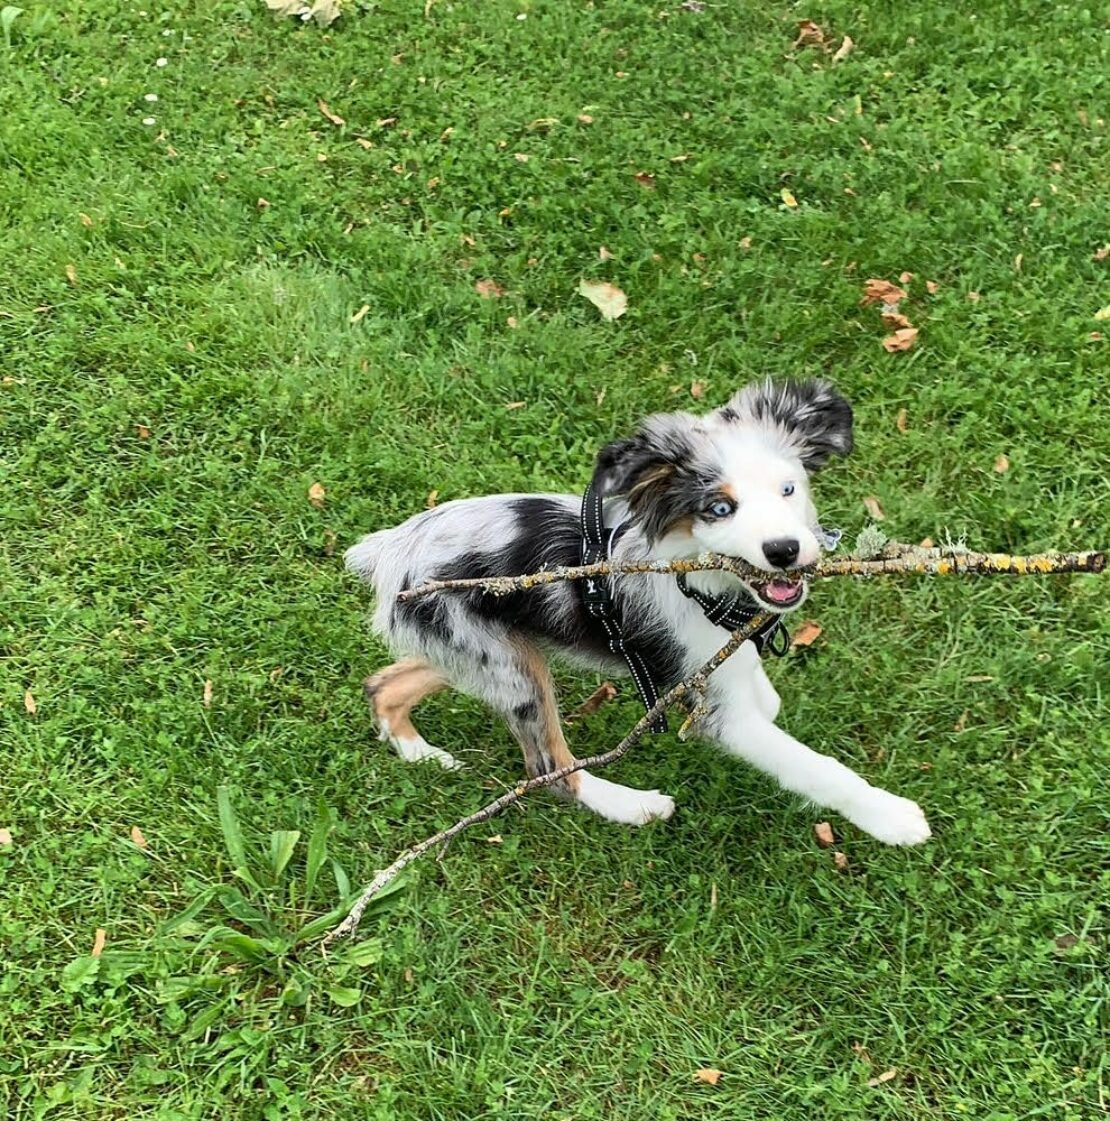 white puppy with black ears and back patches on the grass, tugging at a stick.